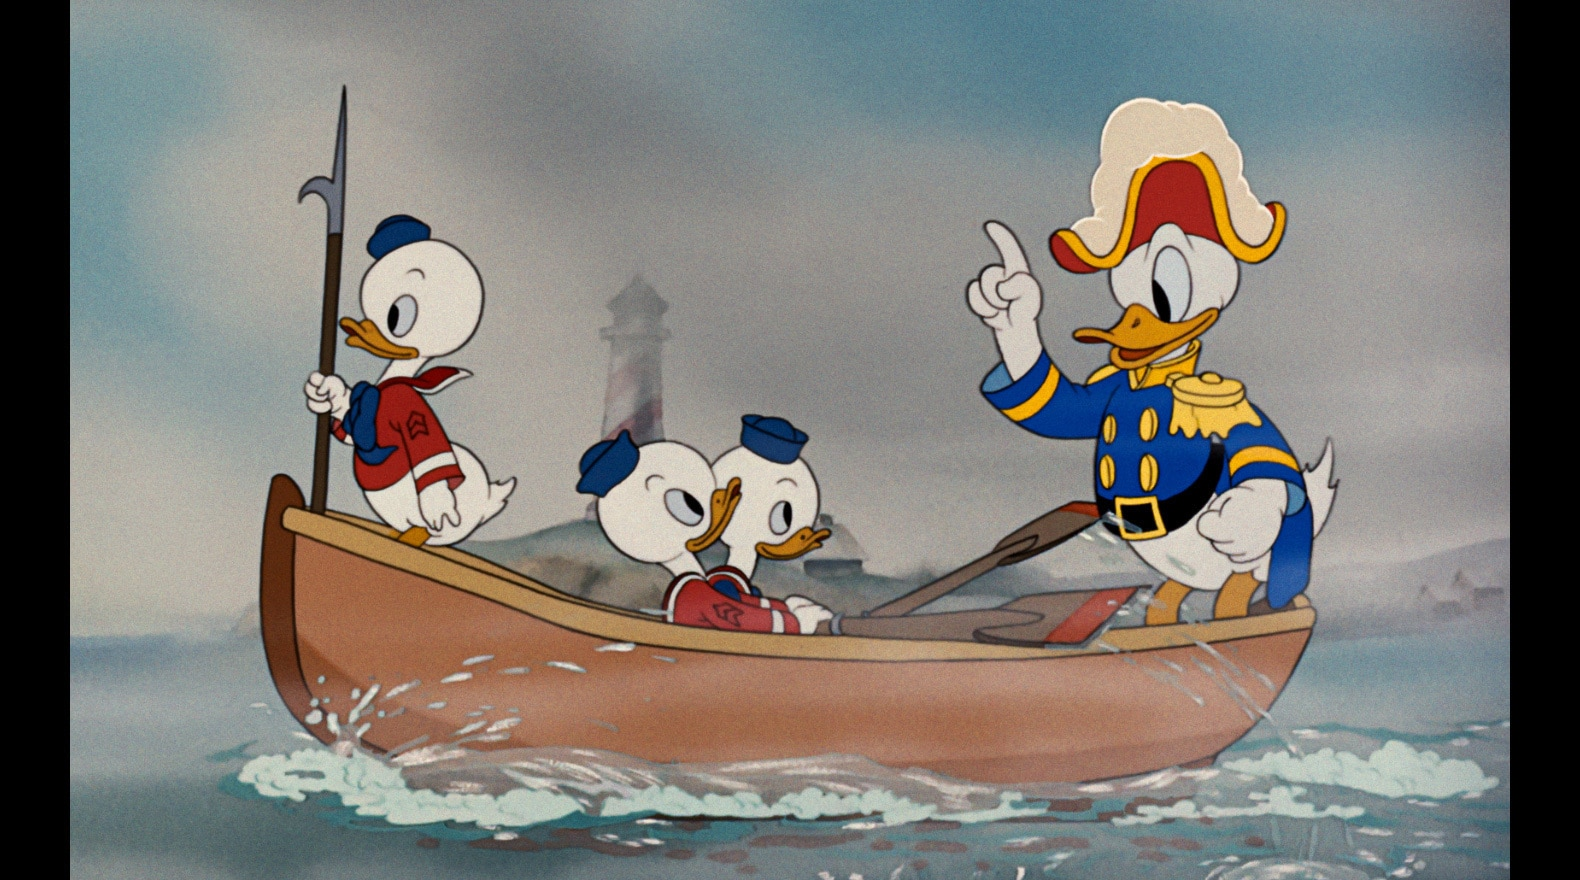 Donald plays captain and takes his nephews out for a day at sea.